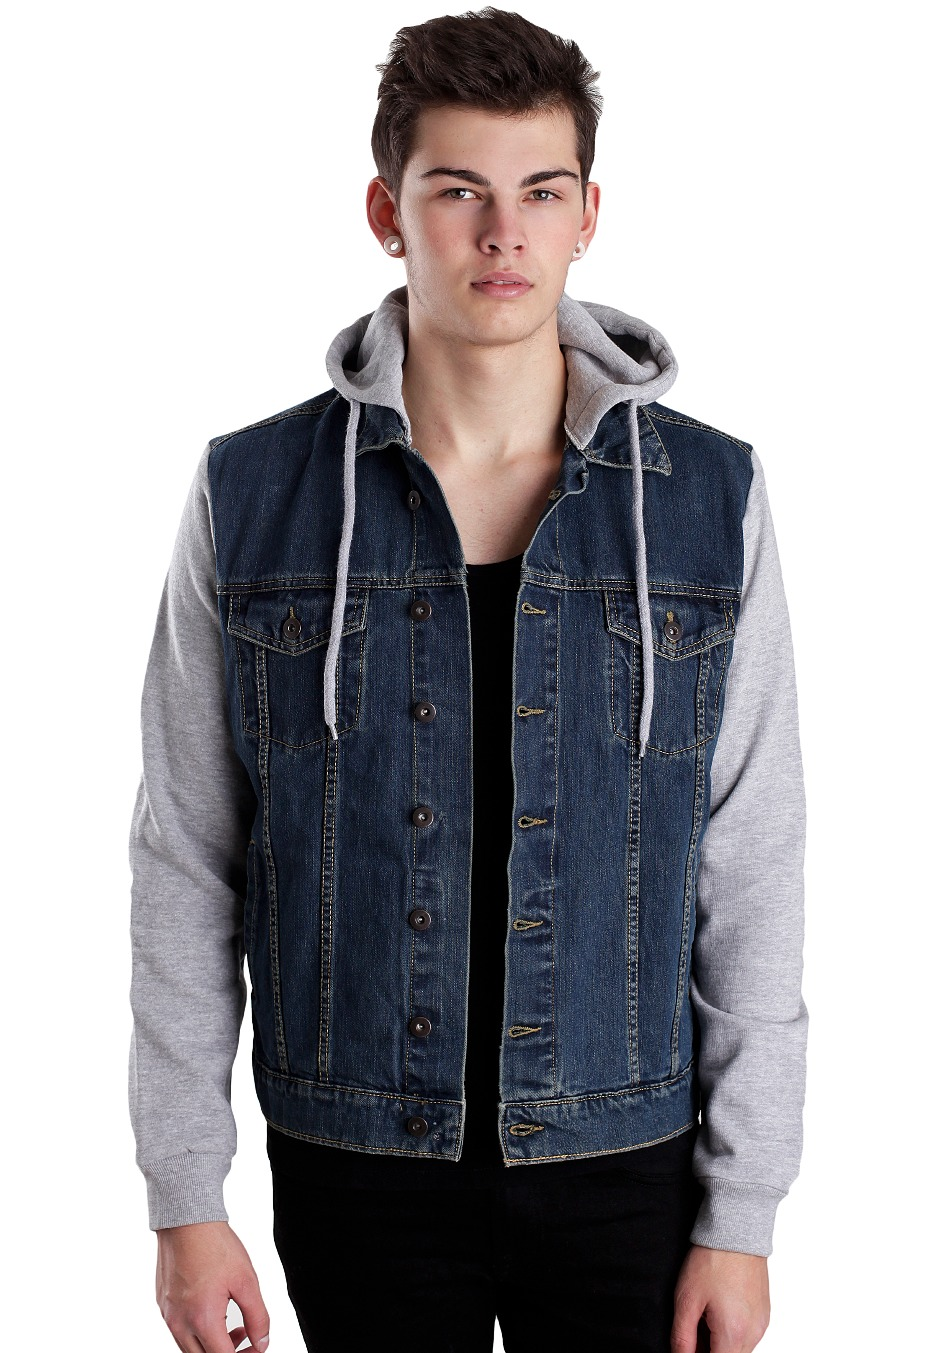 Find great deals on eBay for hooded denim jacket. Shop with confidence.